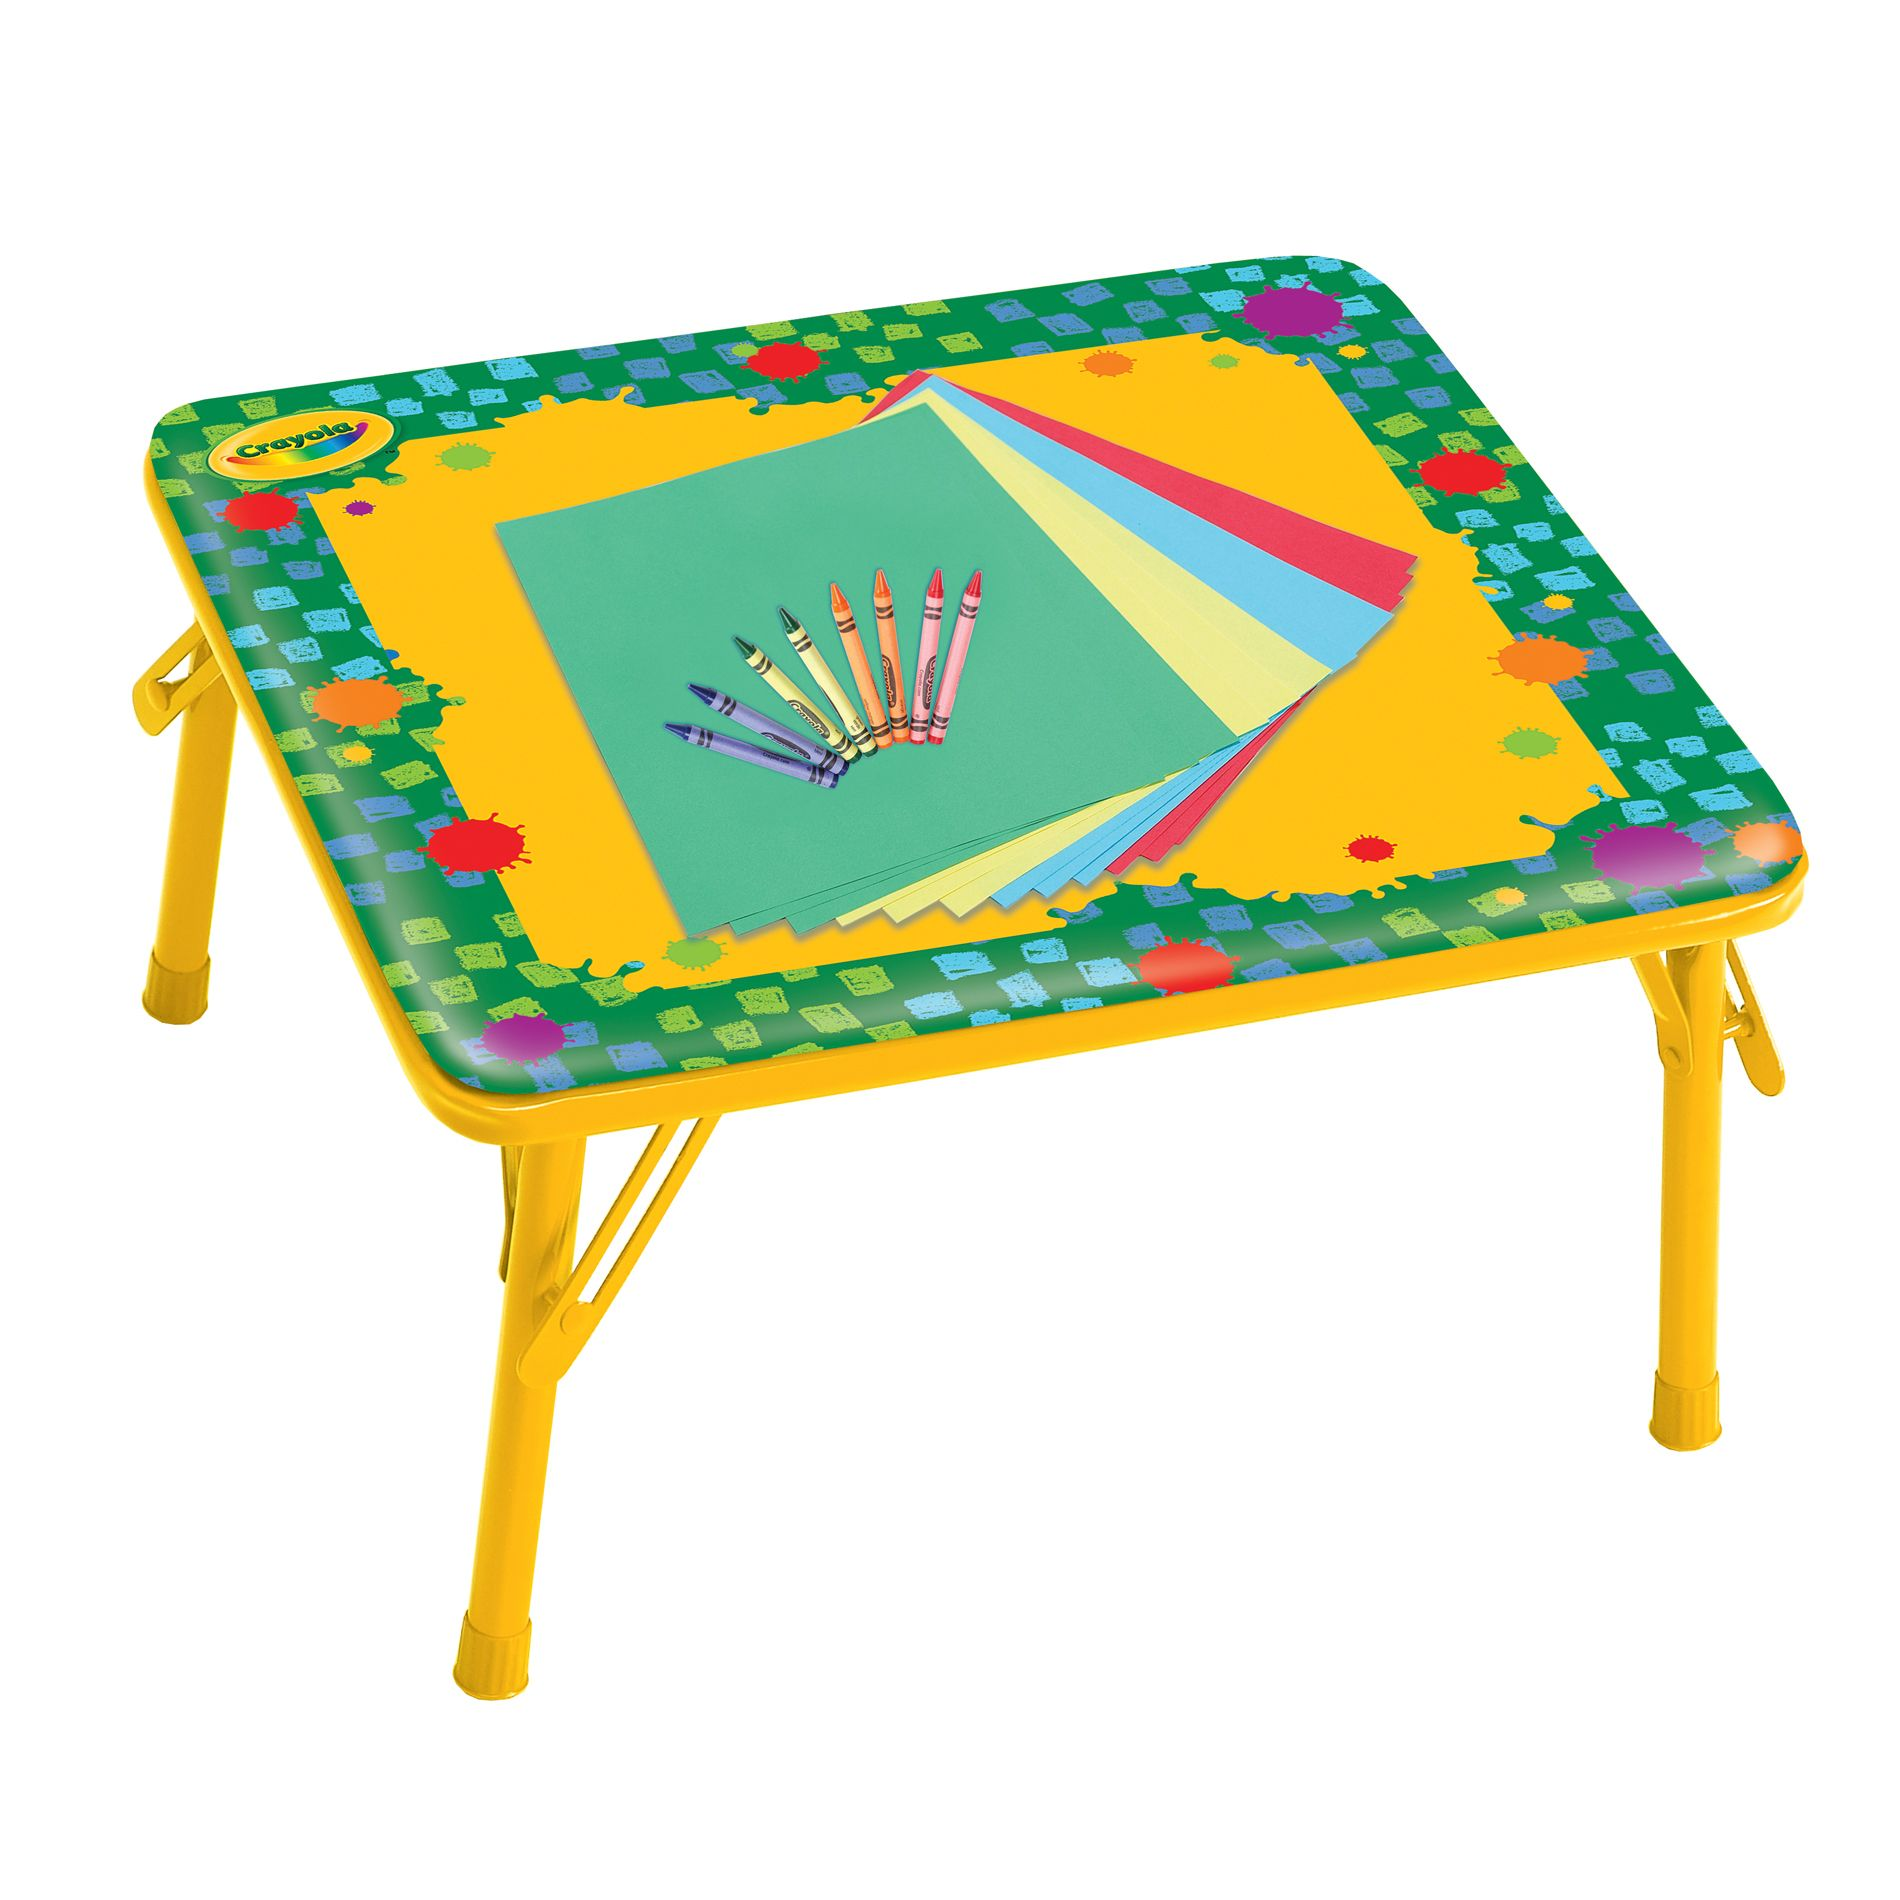 Crayola Sit 'N Play Table